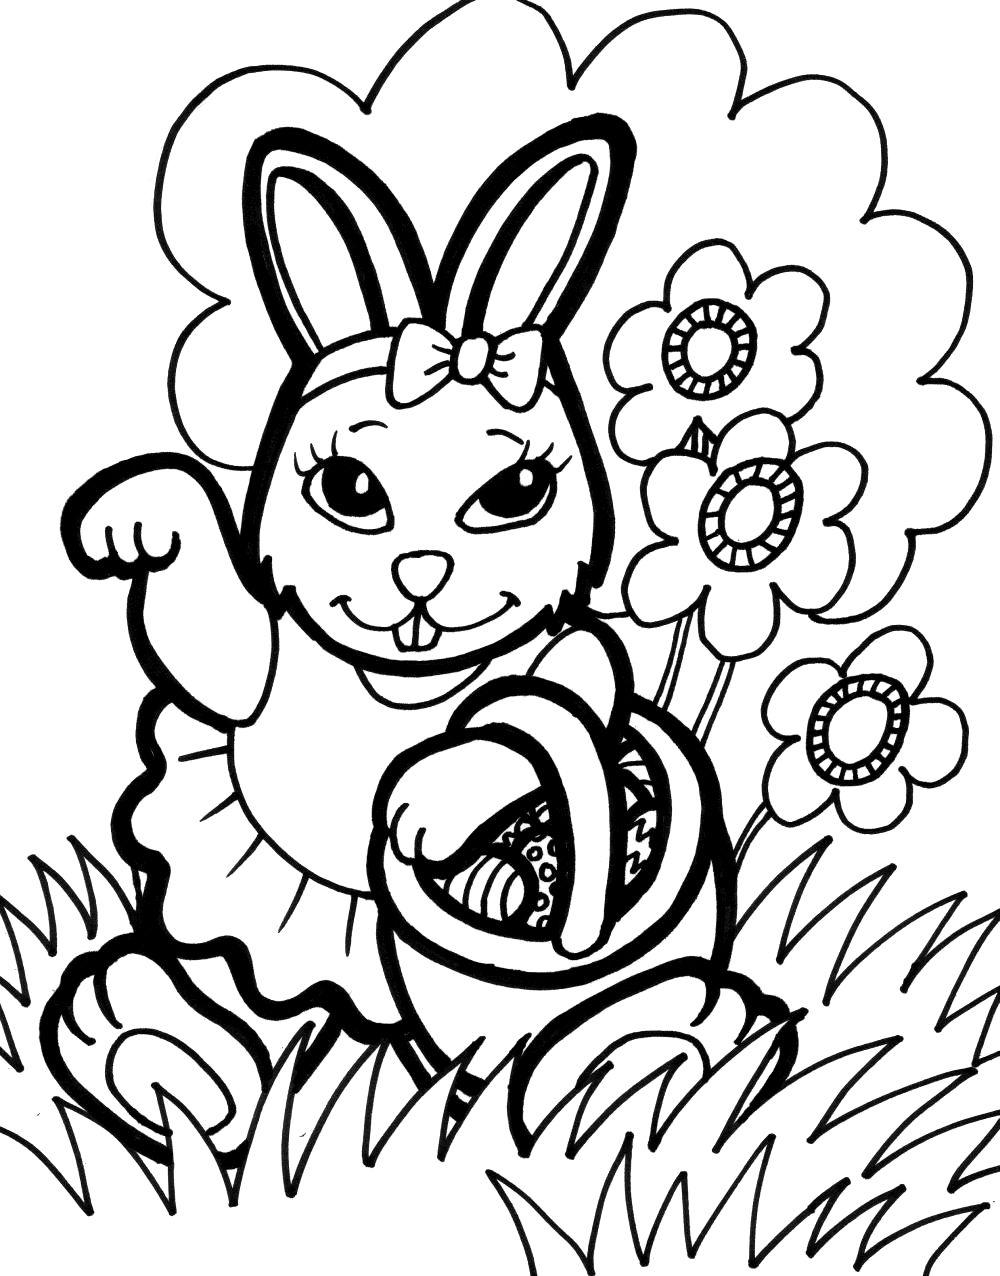 coloring pages onlinw - photo#10